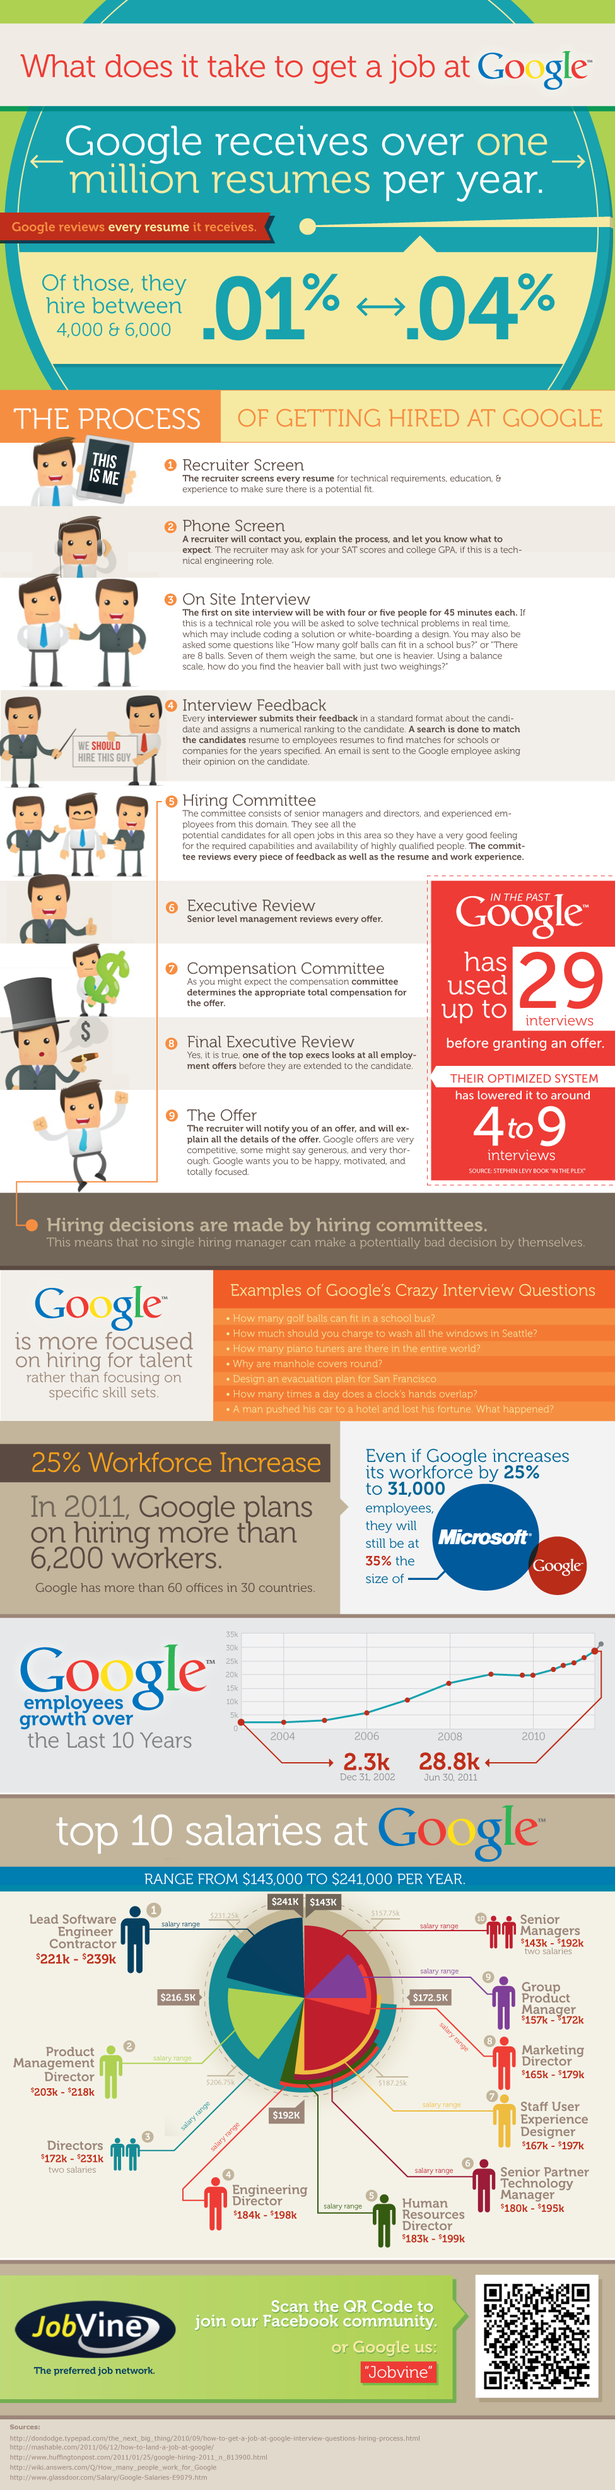 What-Does-It-Take-To-Get-A-Job-At-Google-infographic